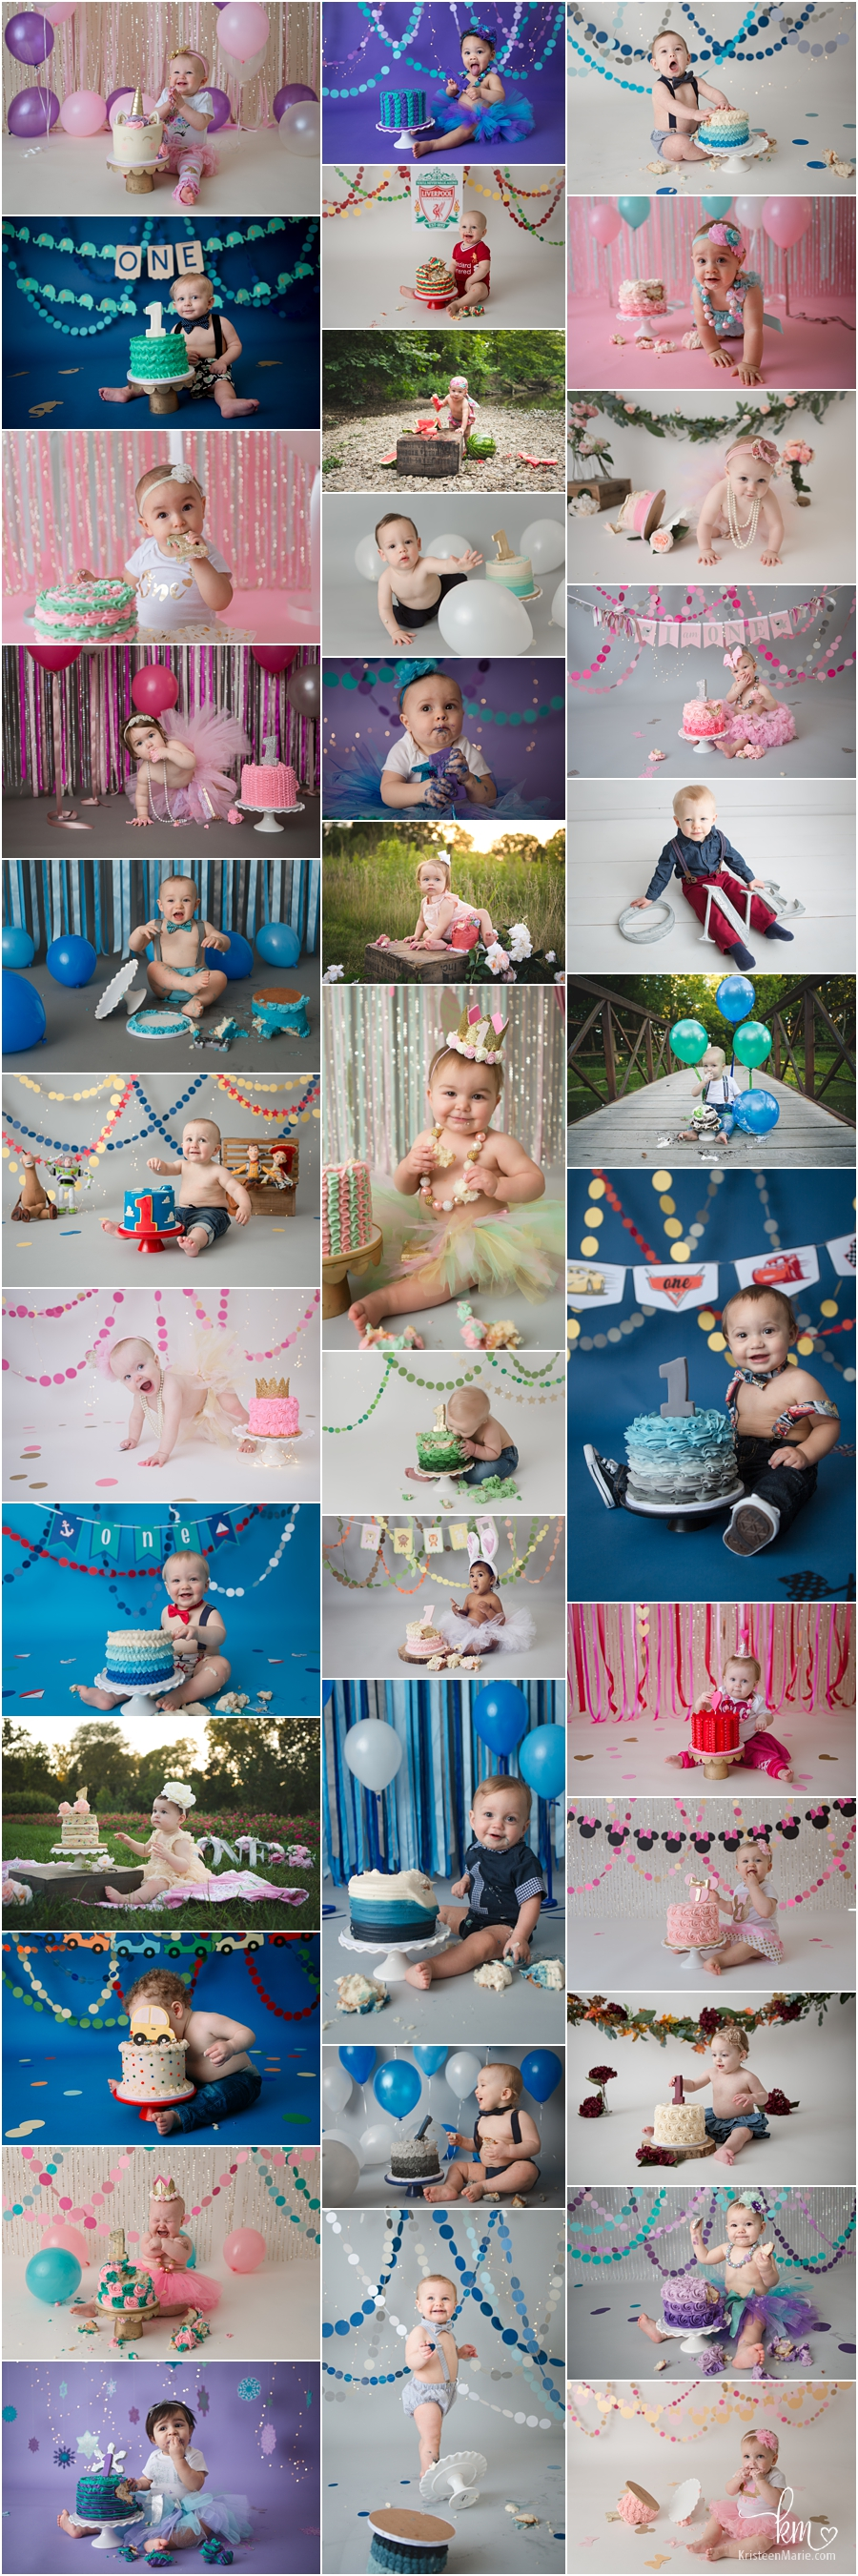 Indianapolis cake smash photographer